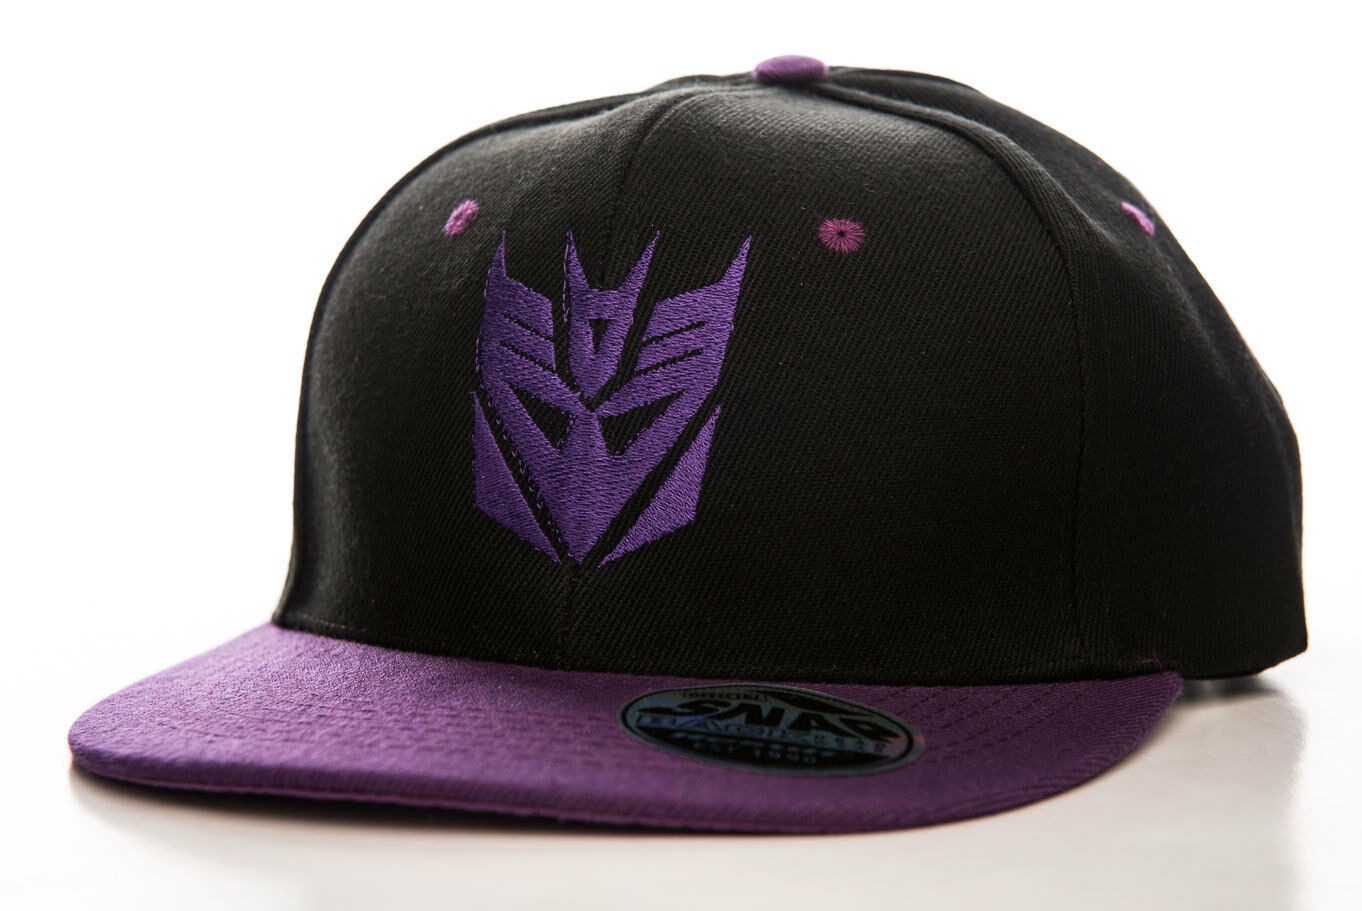 Officially Decepticon Licensed Decepticon Officially Embroidered Adjustable Size Snapback Cap aa8eb0